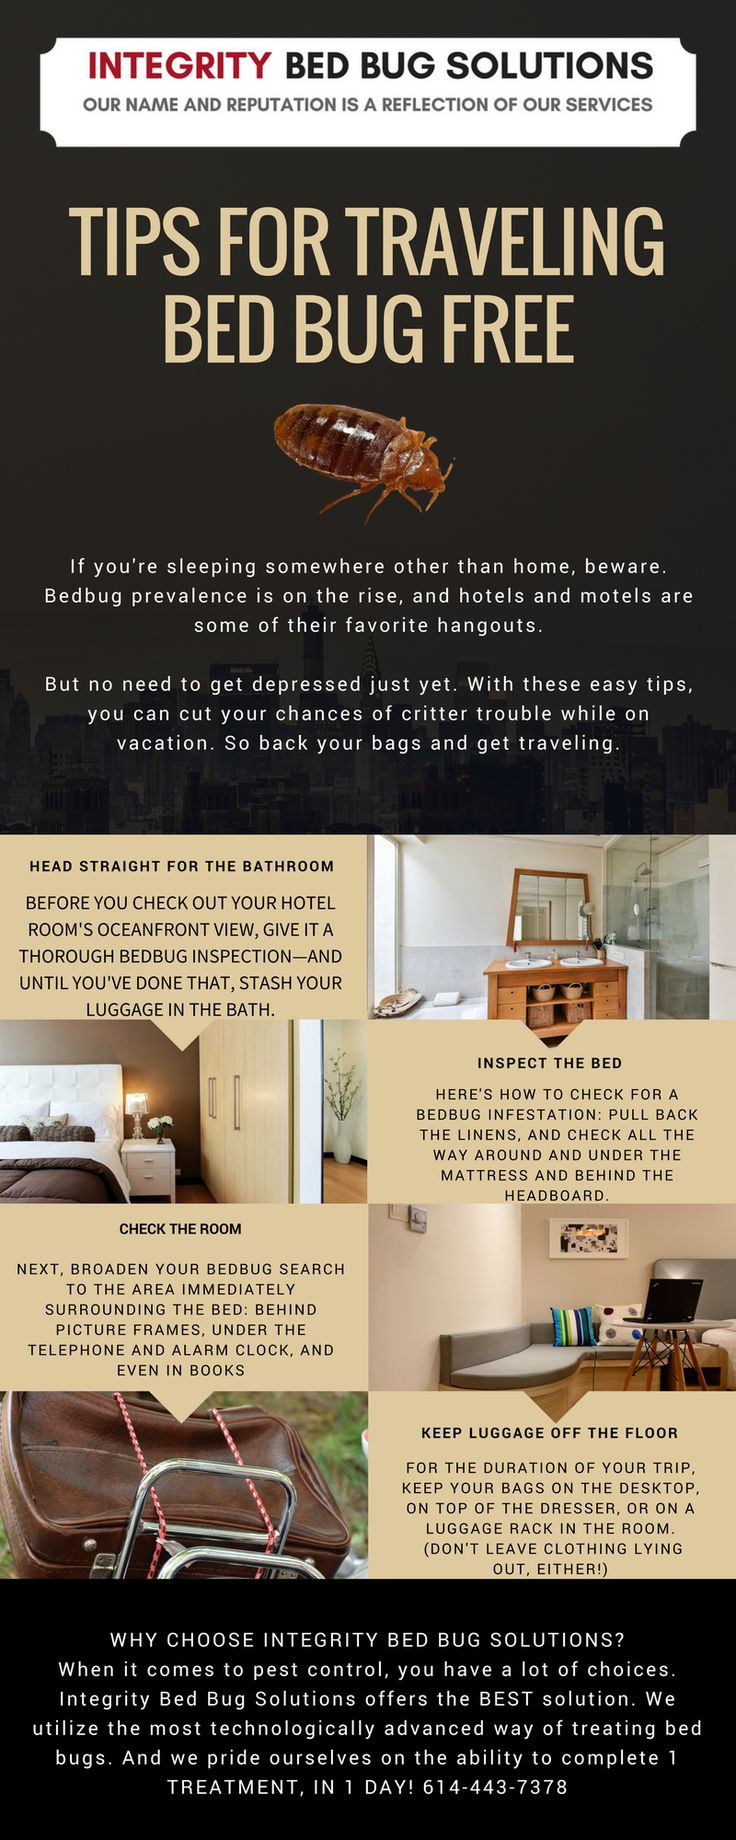 Pin by Integrity Bed Bug Solutions on Bed Bug Education